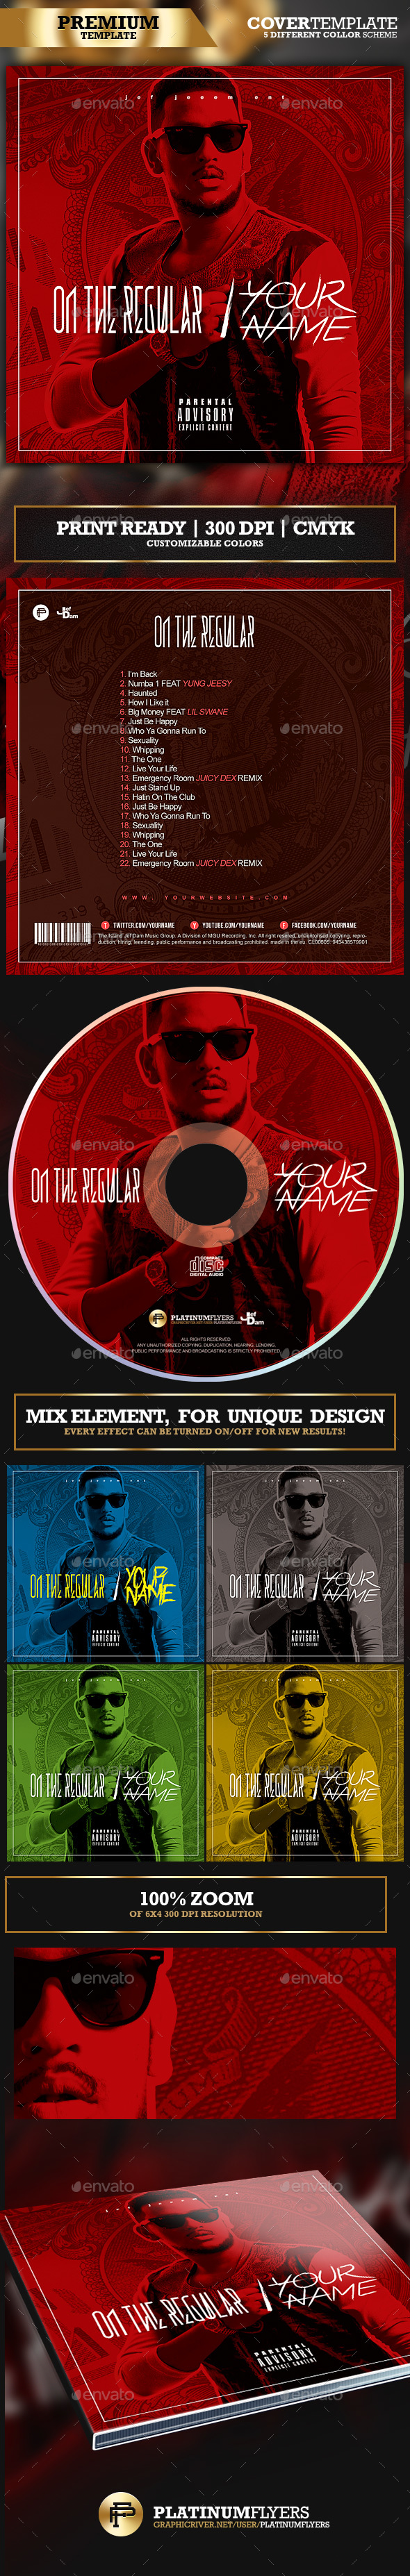 On The Regular Trap Mixtape Album CD Cover Template - Print Templates